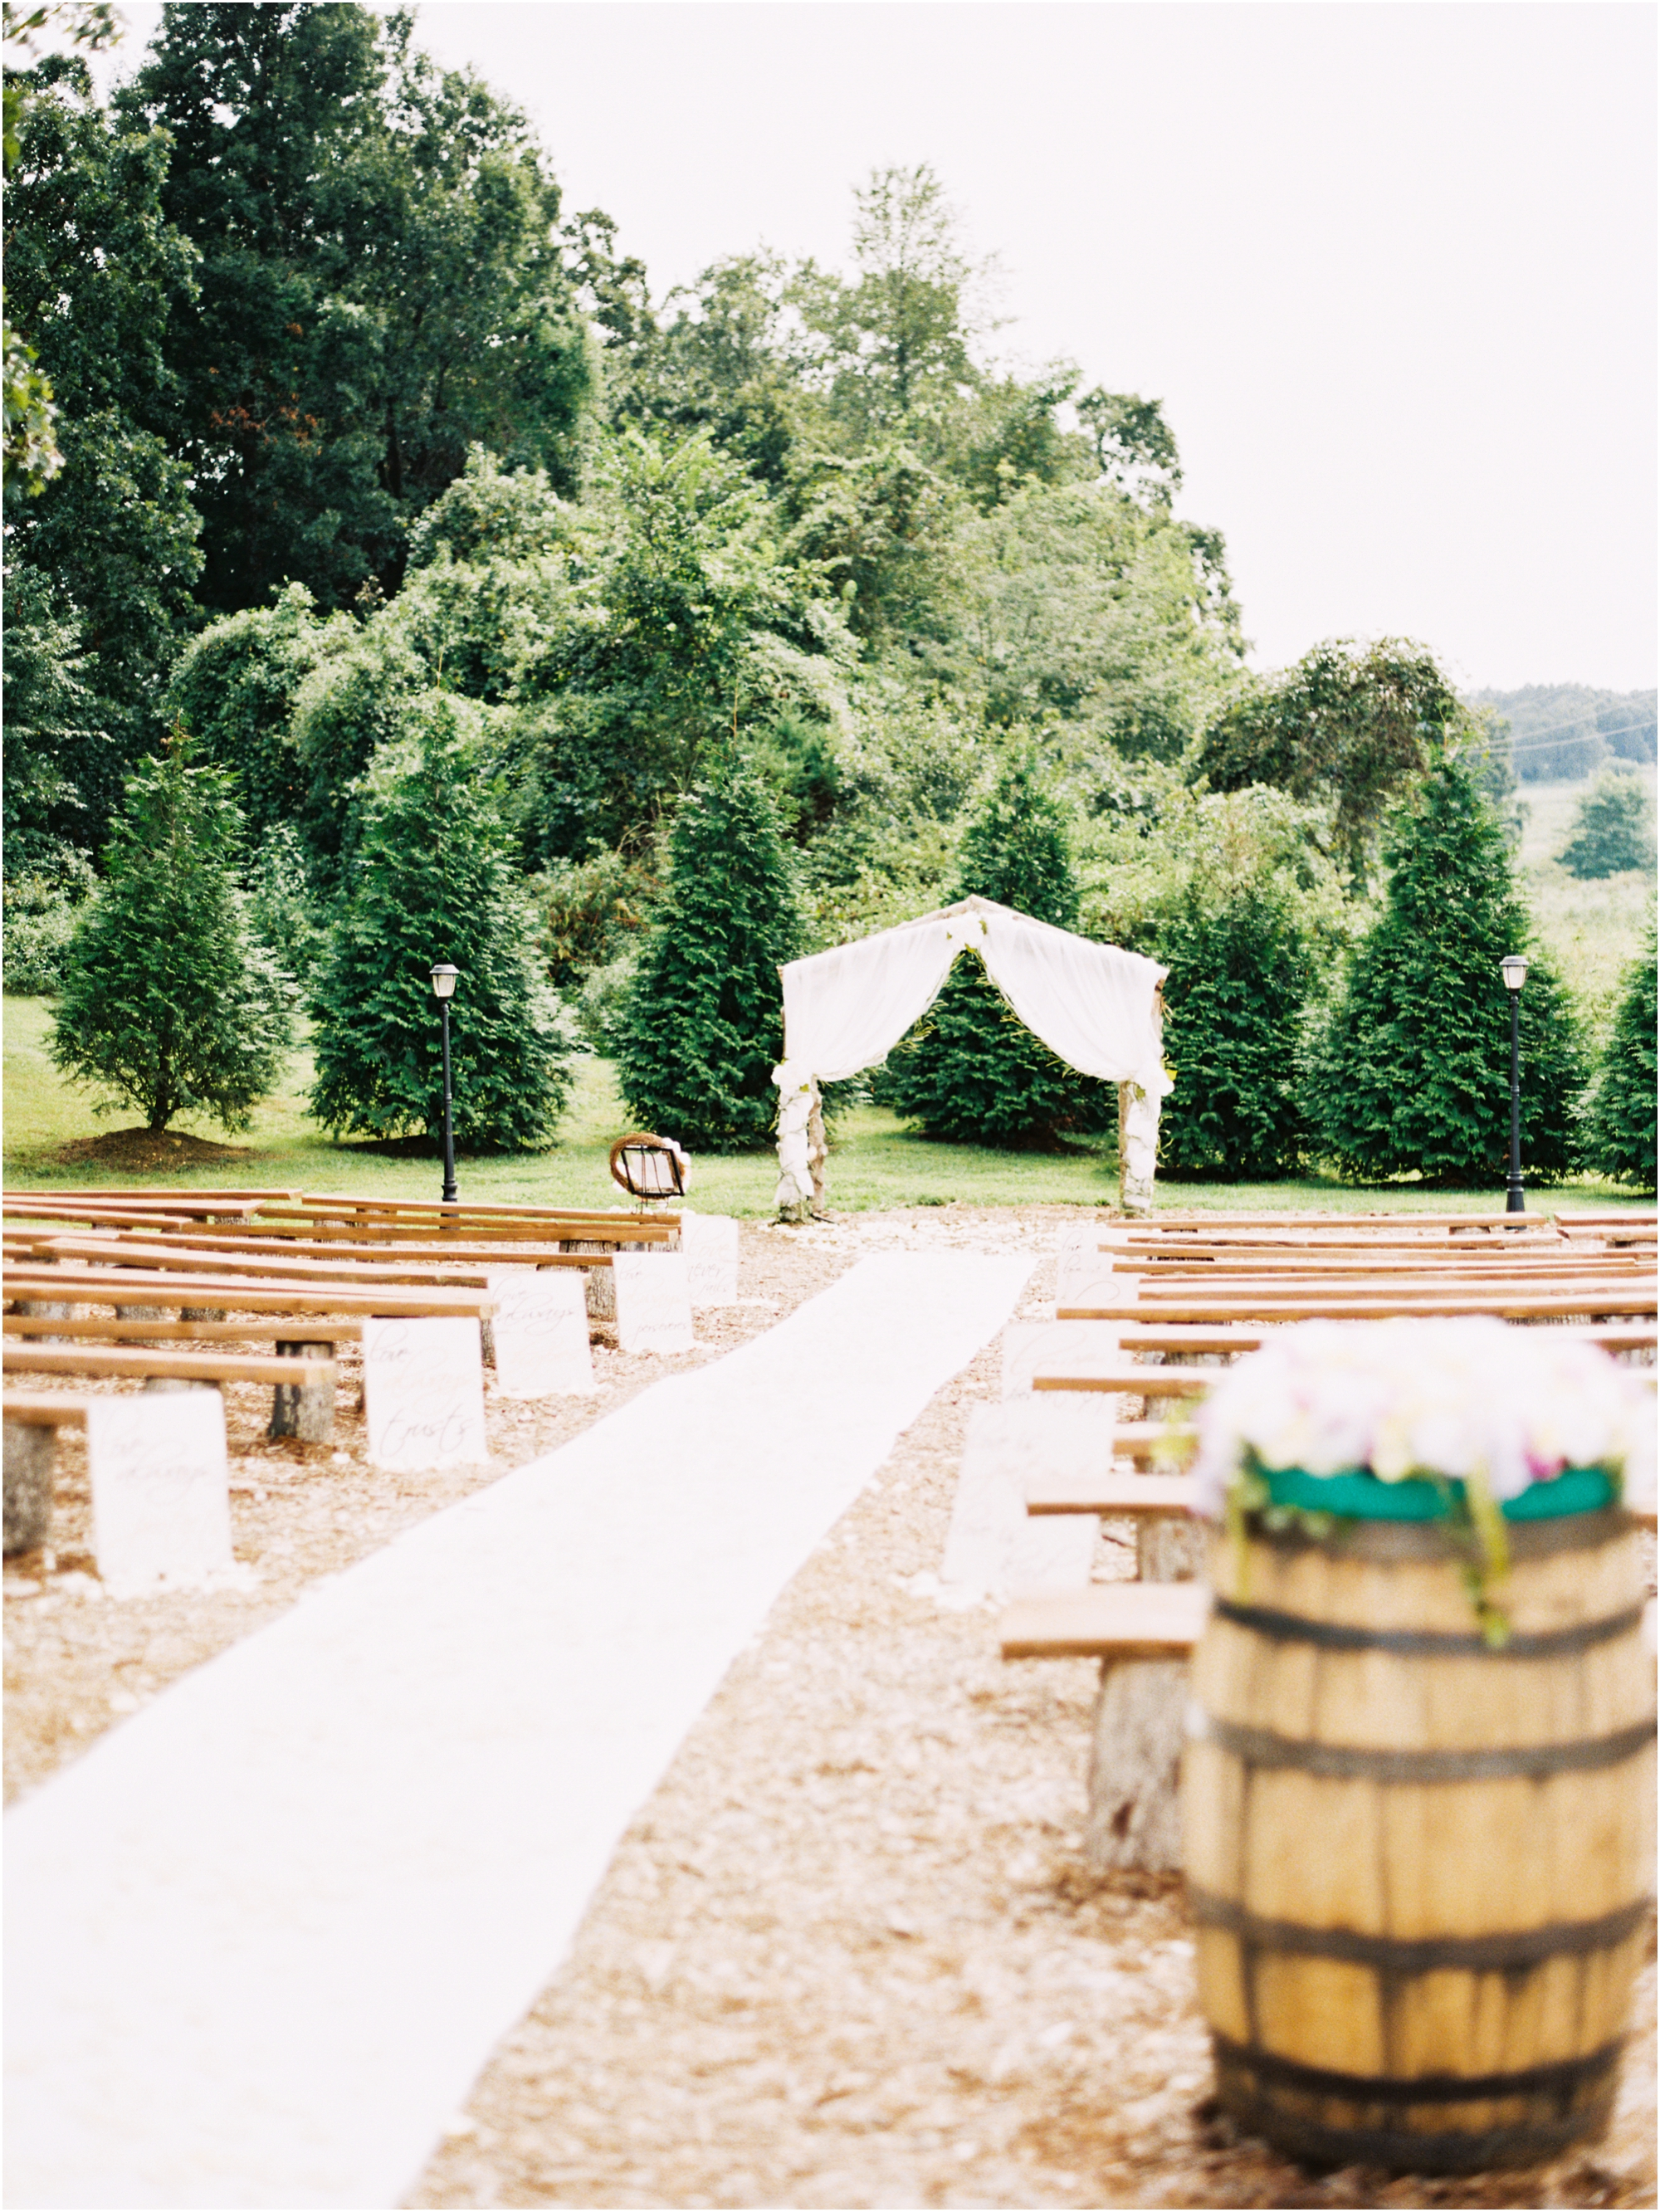 Ceremony Details for the southern bride by Jordan Brittley Photography (www.jordanbrittley.com)